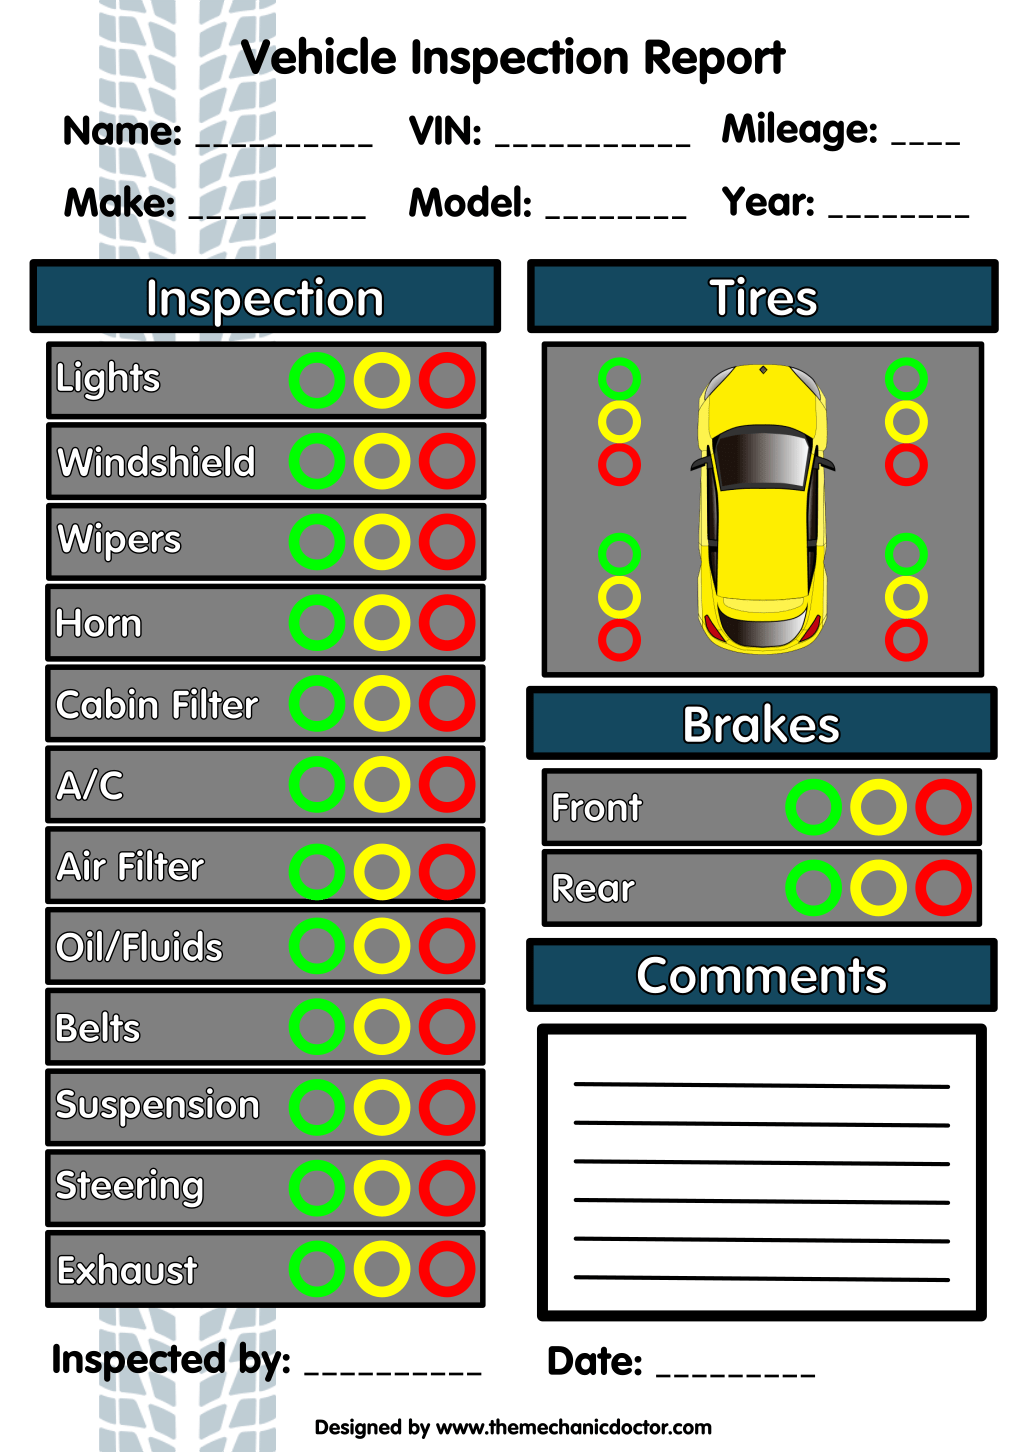 5 Free Vehicle Inspection Forms - Modern Looking Checklists for ...